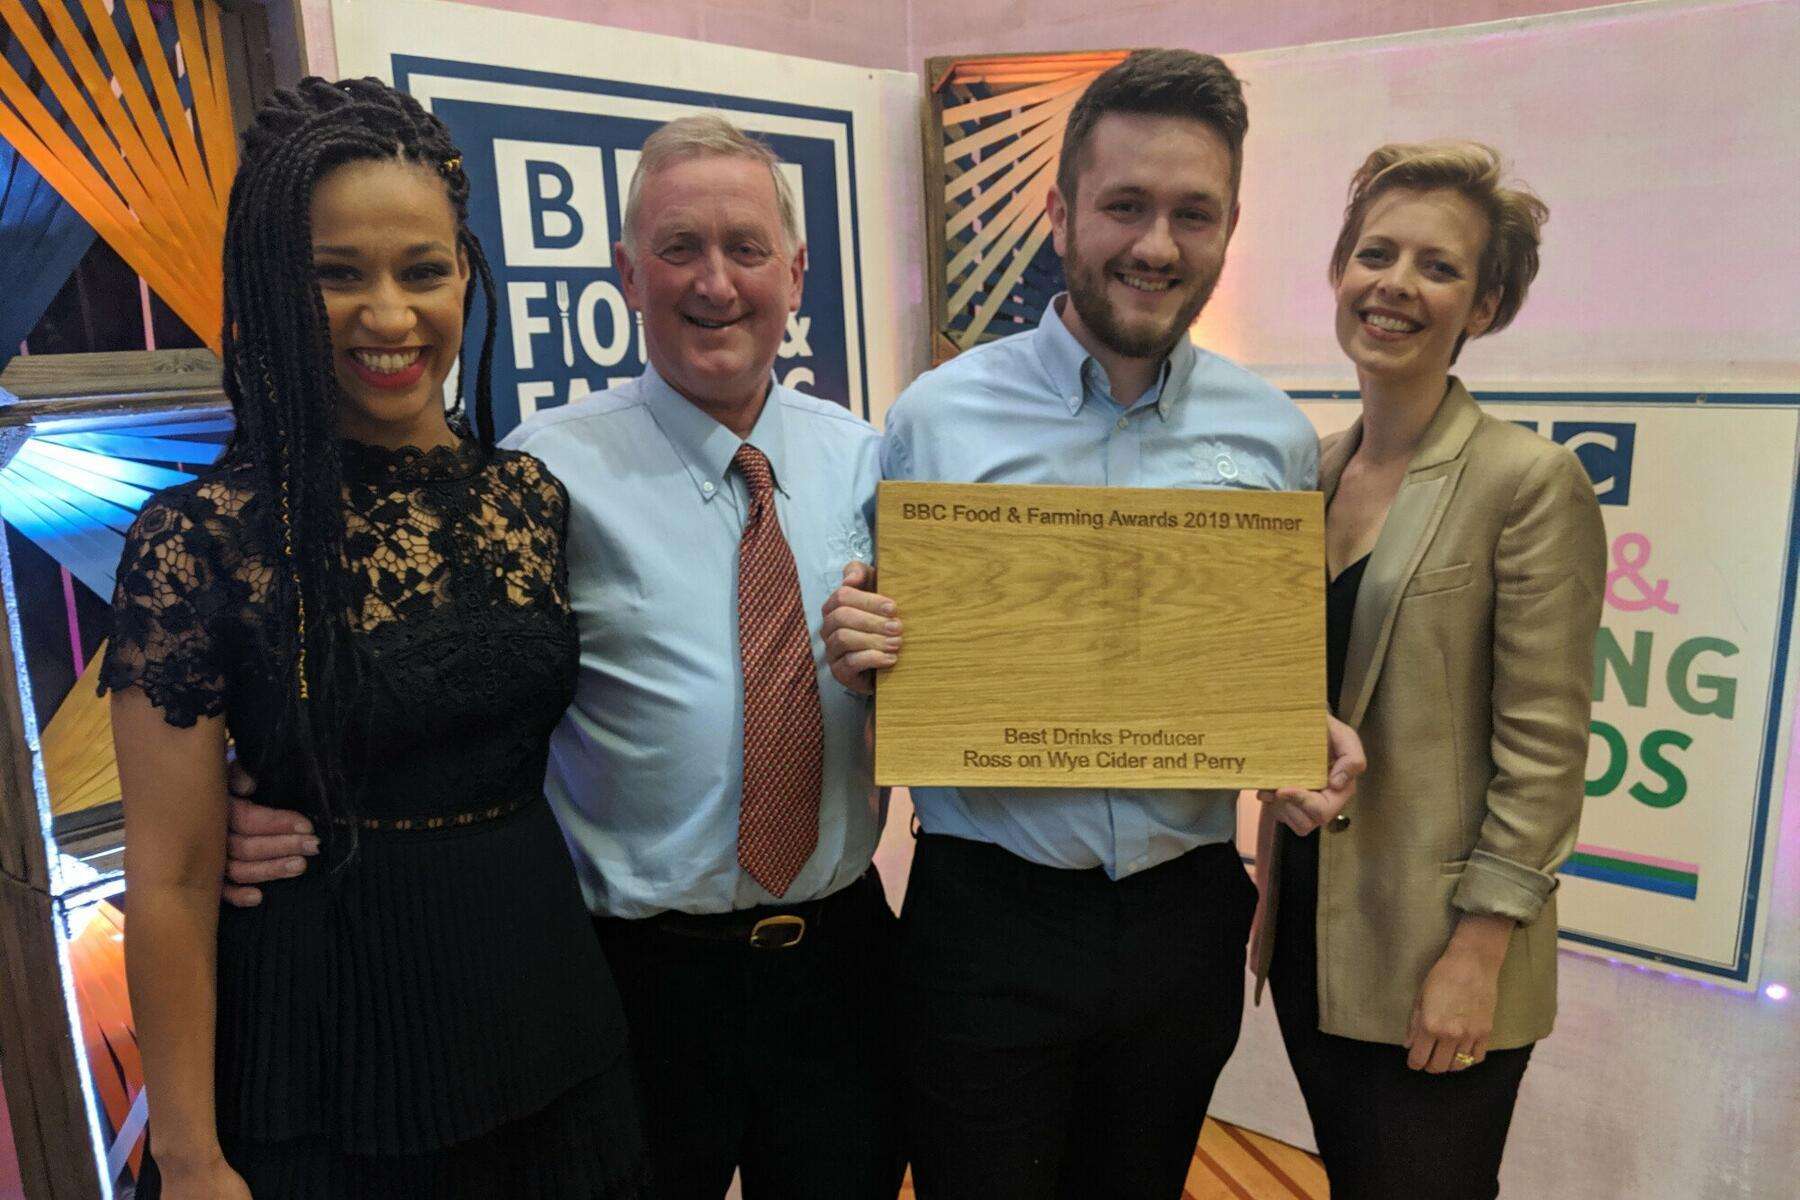 In 2019 we won the BBC Food&Farming Awards 'Best Drinks Producer' category, Mike & Albert pose here with amazing judges Jaega Wise and Alice Lascelles